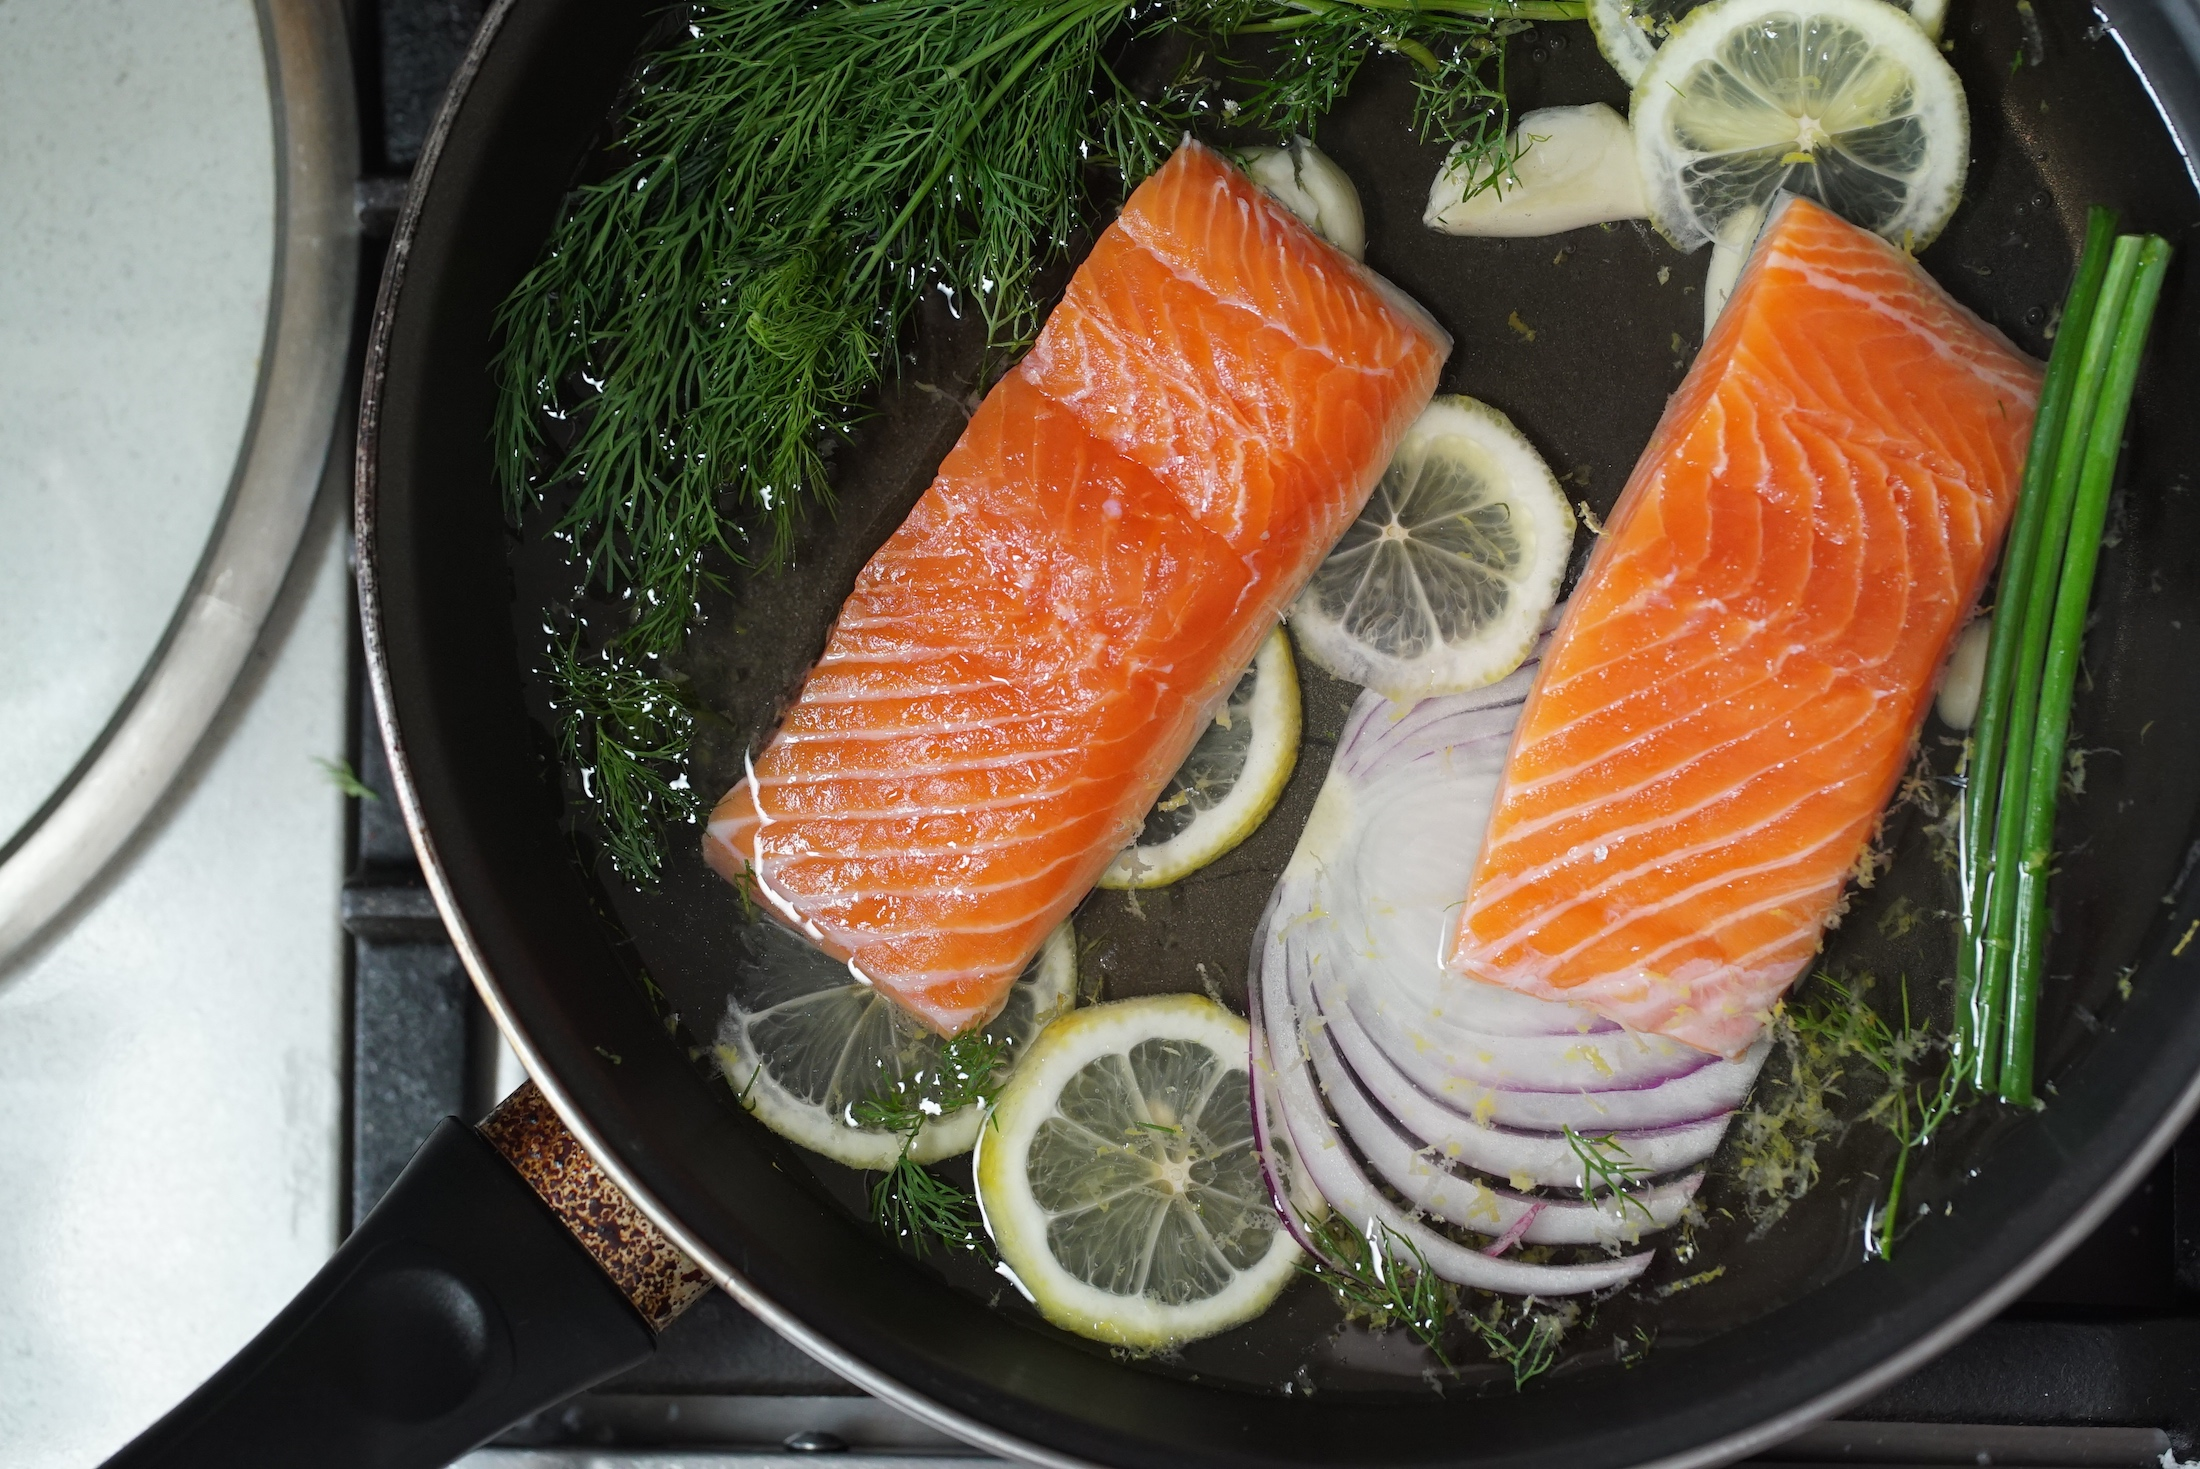 Poached Salmon PLUS recommend